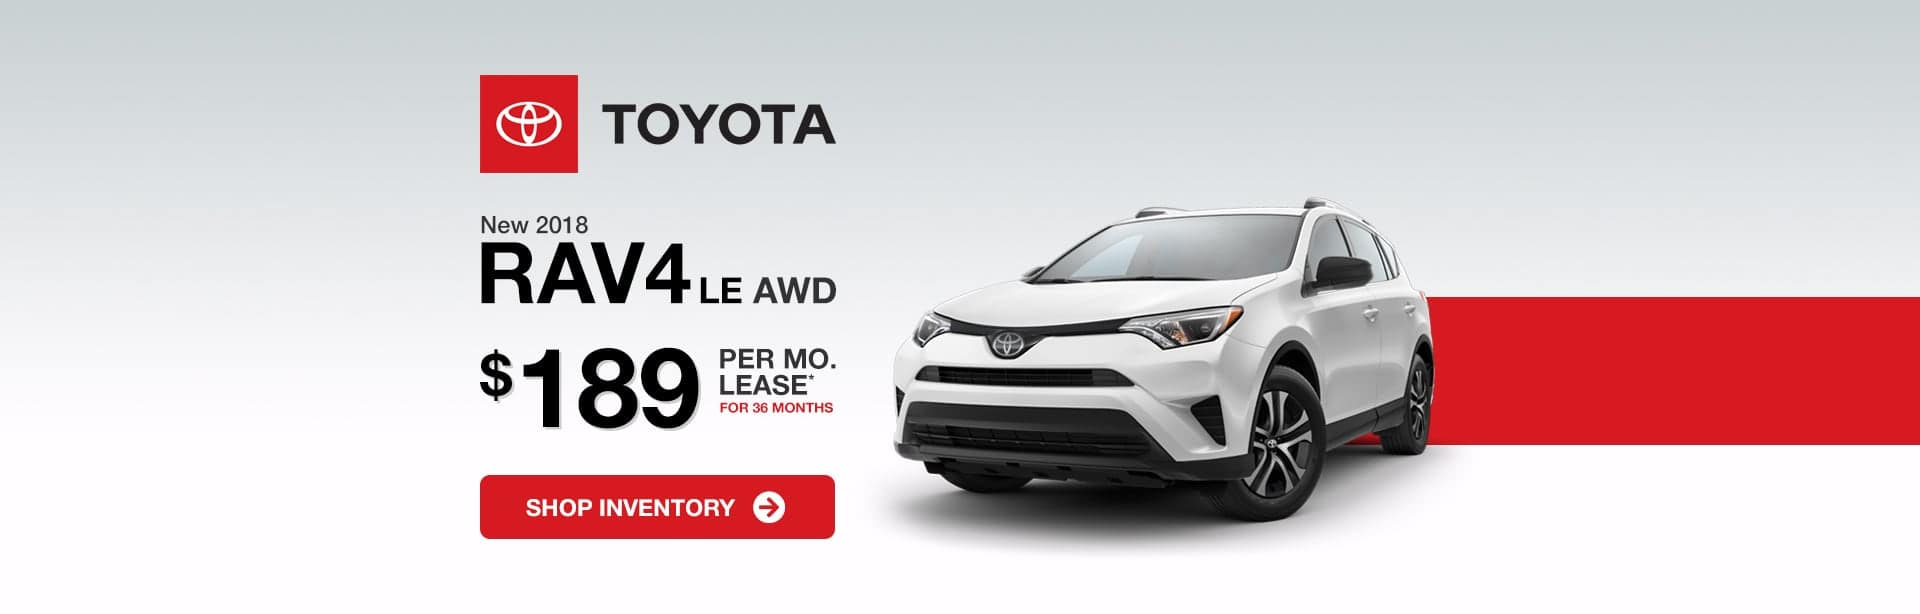 RAV4 Lease Special near Greenwood, Indiana